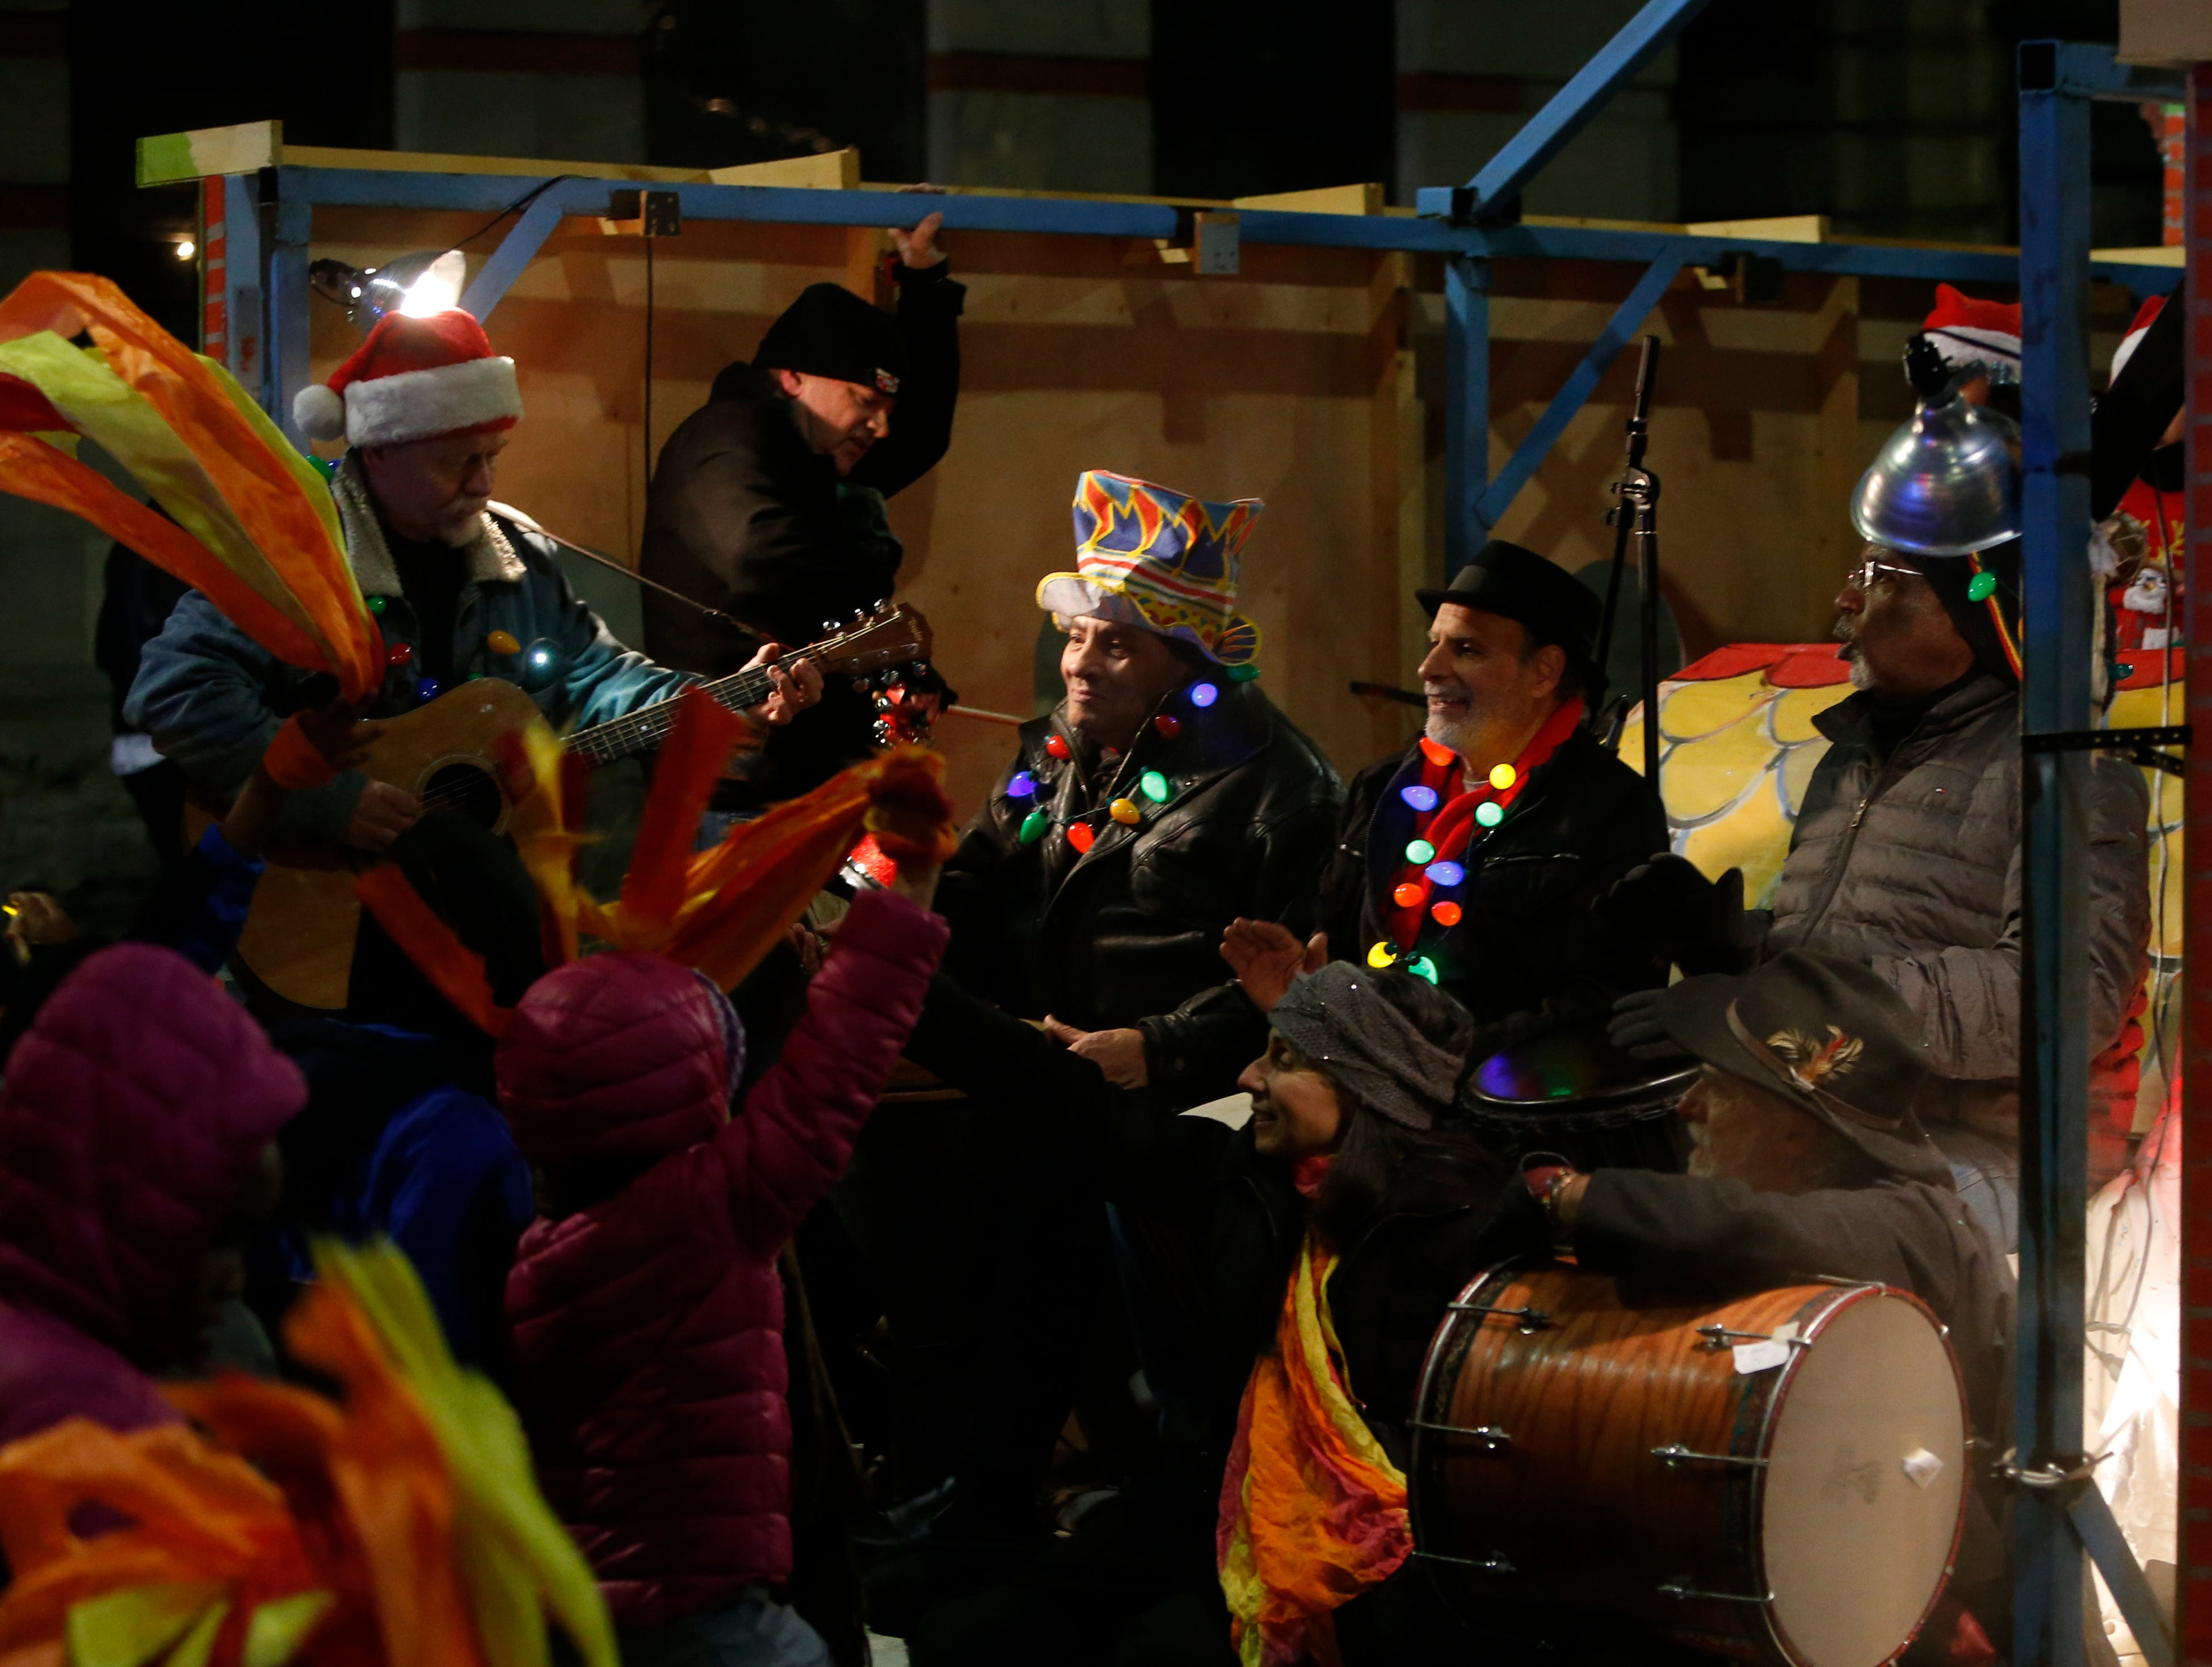 From left, David Hennisen, Aldin Chiappolini, Franc Palaia and Bryan Henry play music on the back of the Cuneen Hackett Arts Center float during the Celebration of Lights in the City of Poughkeepsie on November 30, 2018.